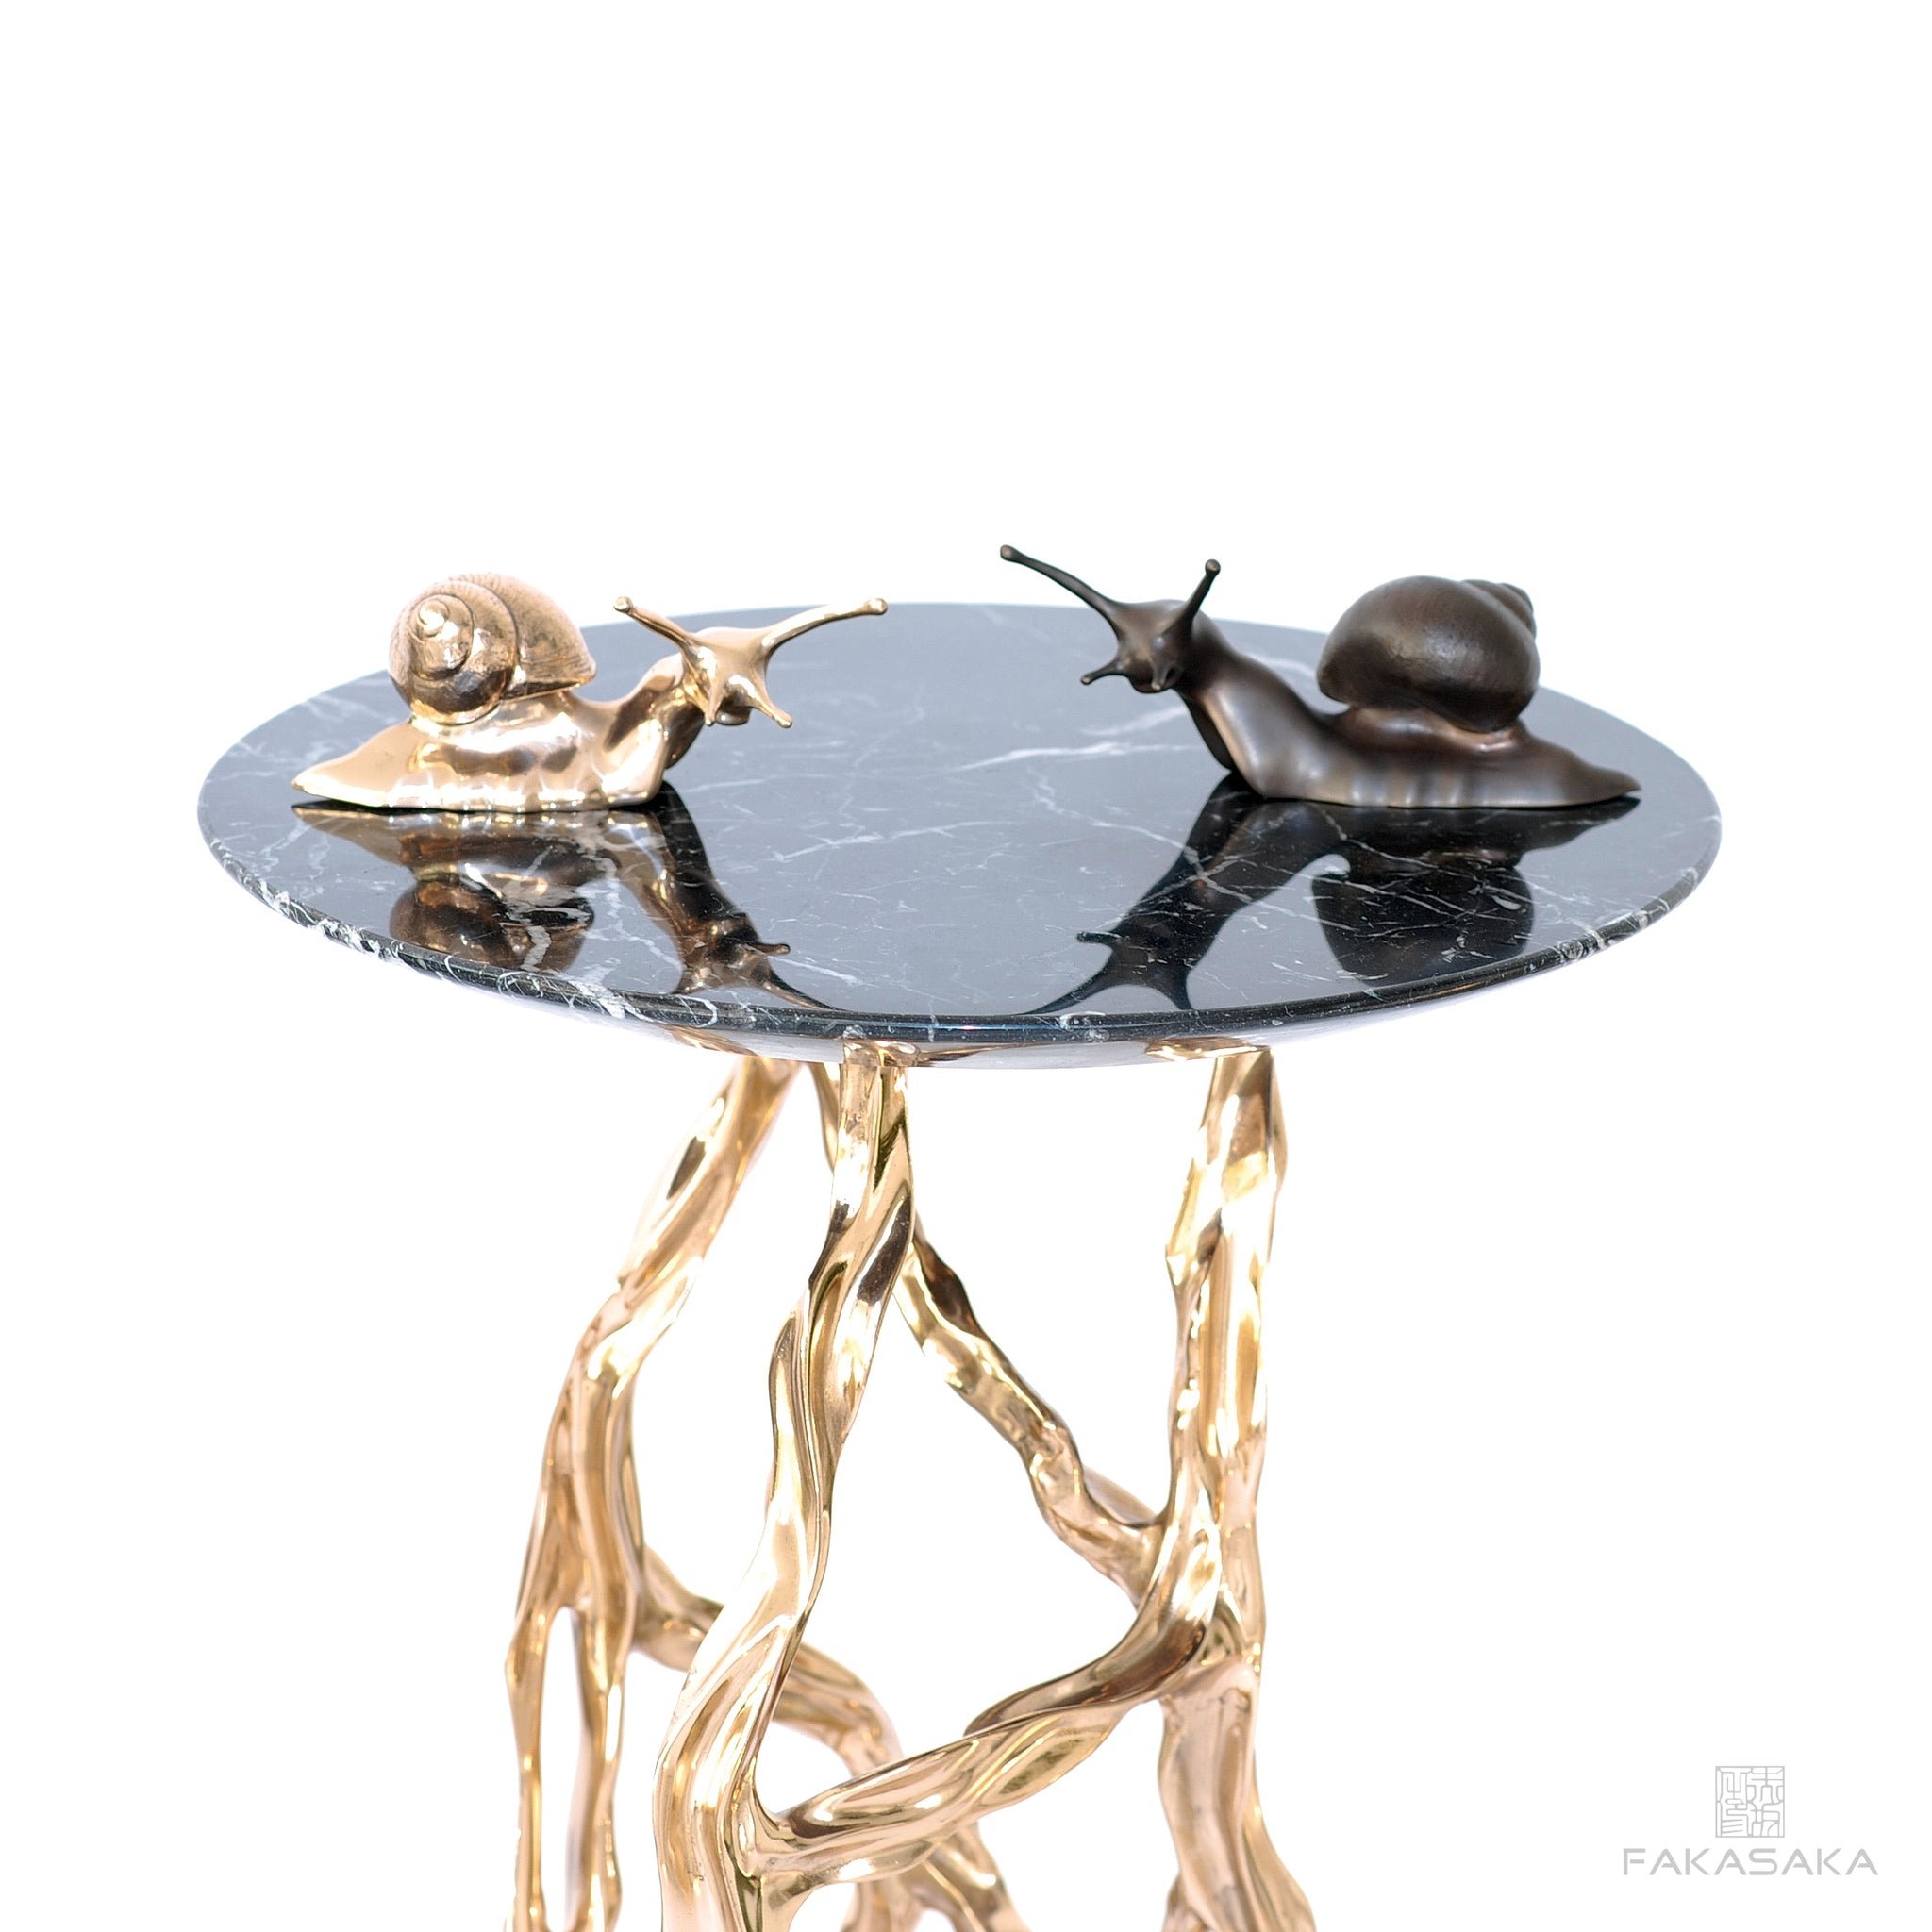 L' ESCARGOT GAUCHE<br><br>SCULPTURE / PAPER WEIGHT<br><br>DARK BRONZE<br>BRONZE BASE